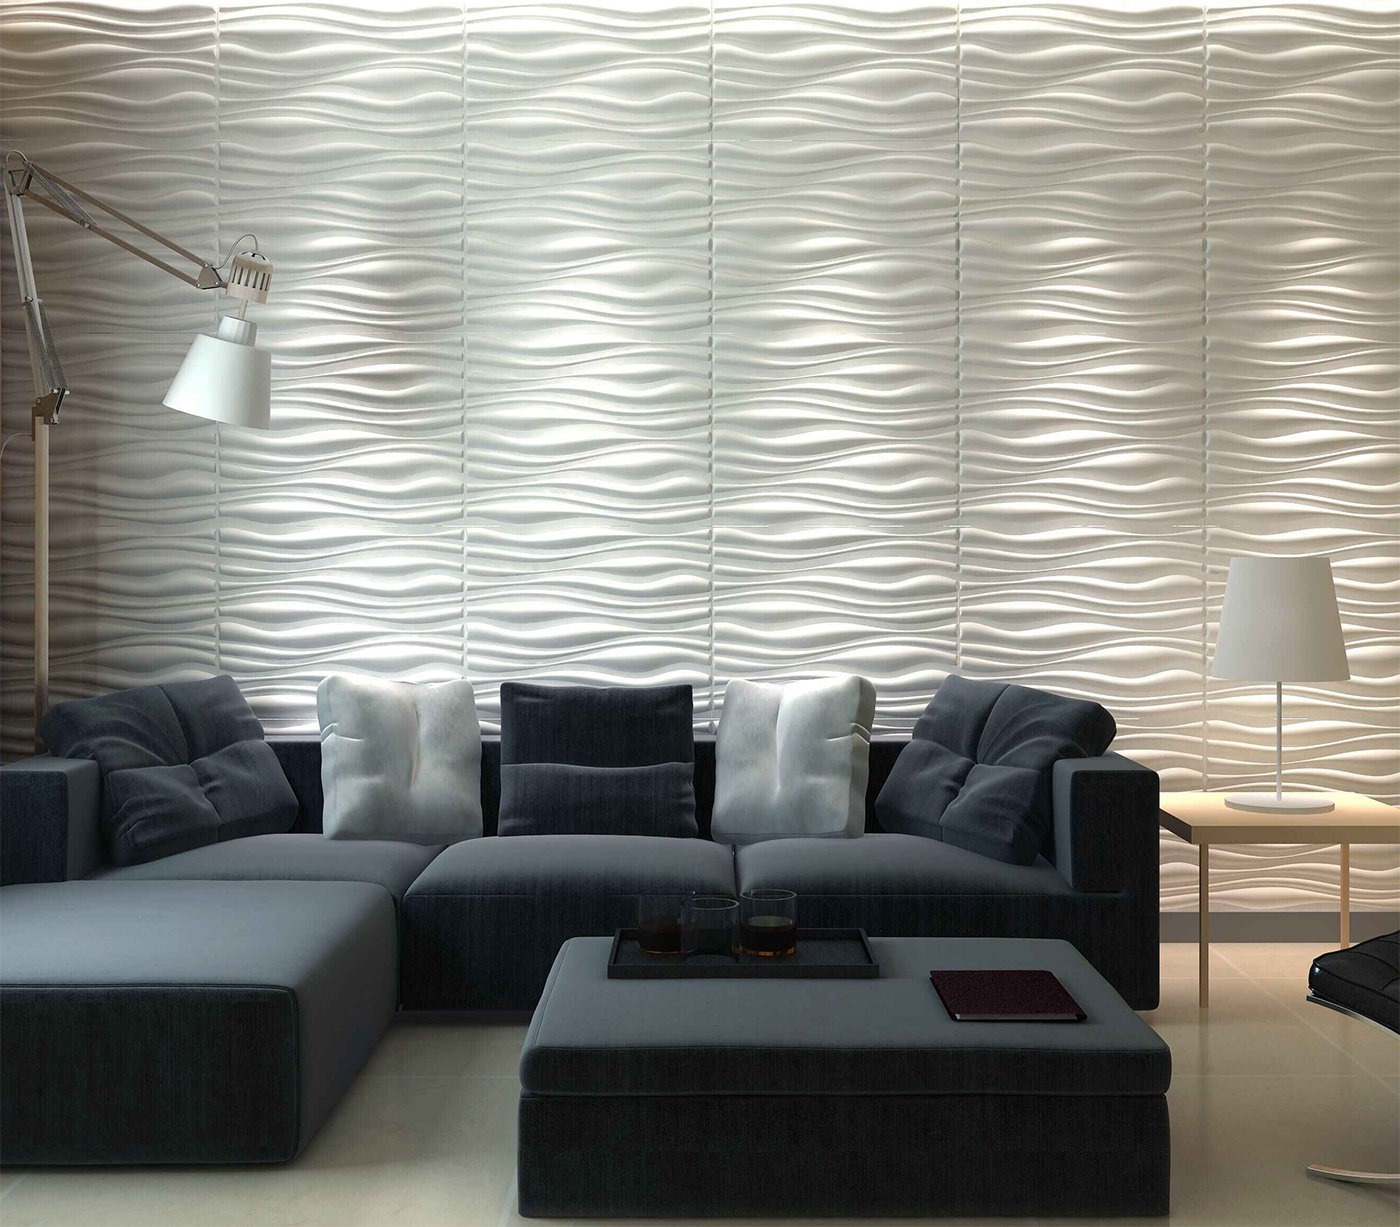 Cheap Wave Tiles For Walls, find Wave Tiles For Walls deals on line ...